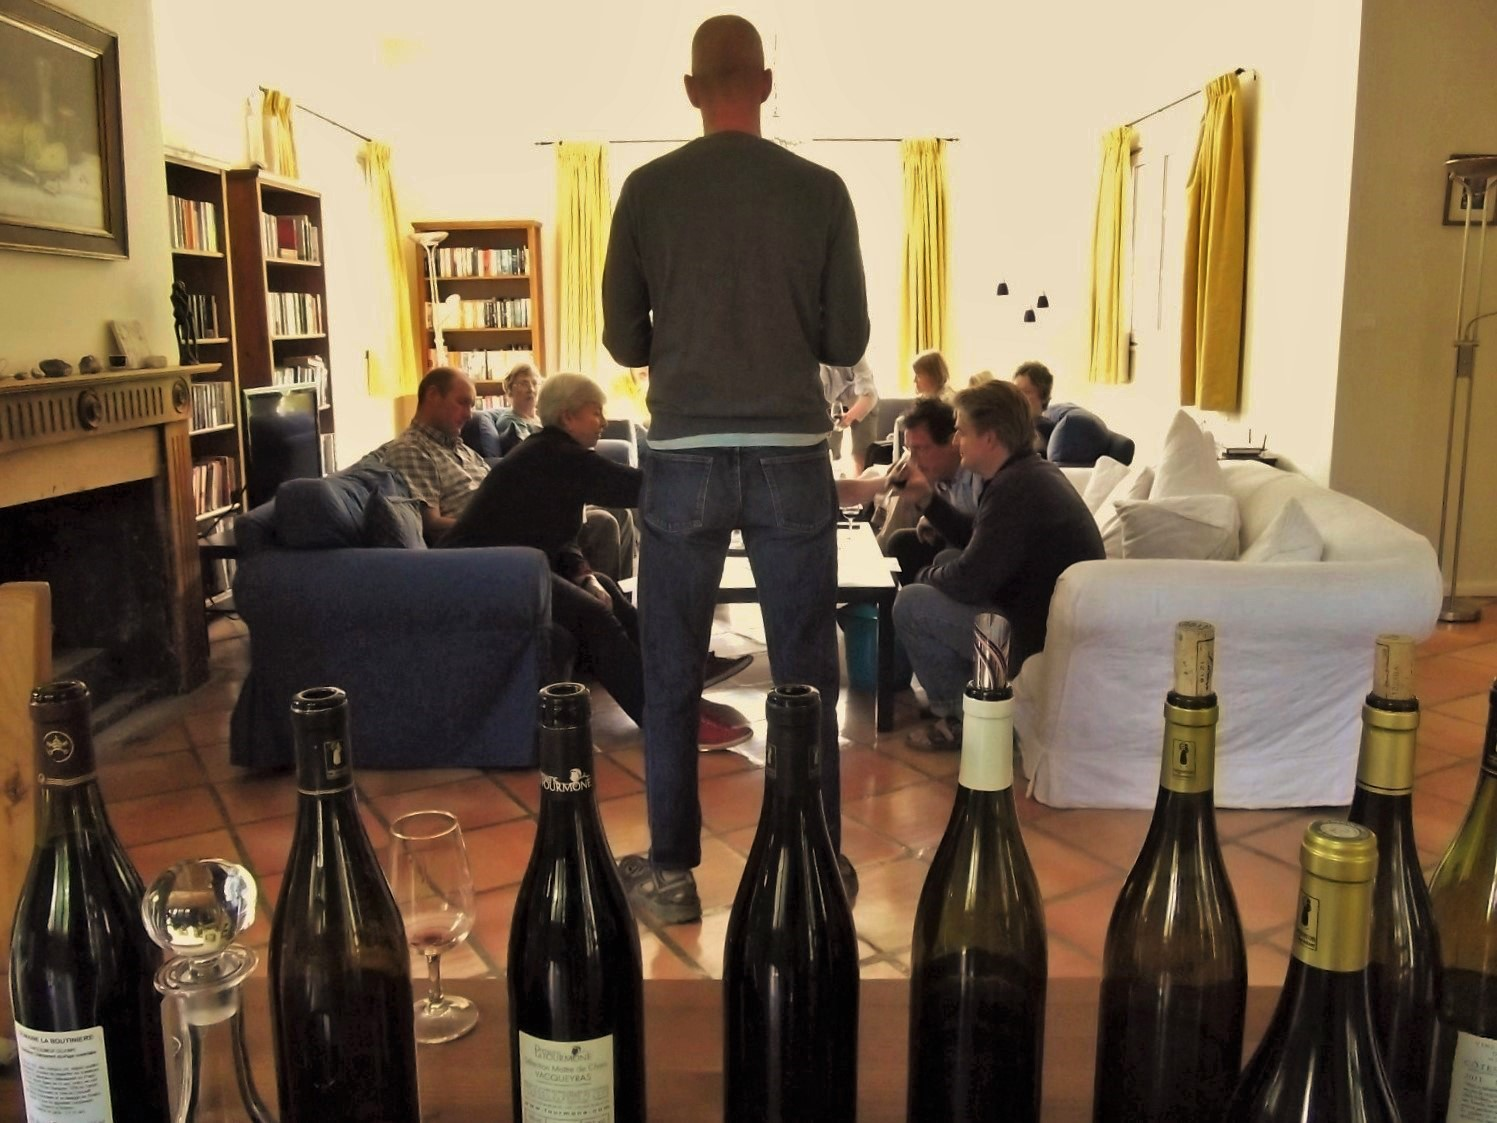 We come to you with some of the best wines of the Rhône Valley